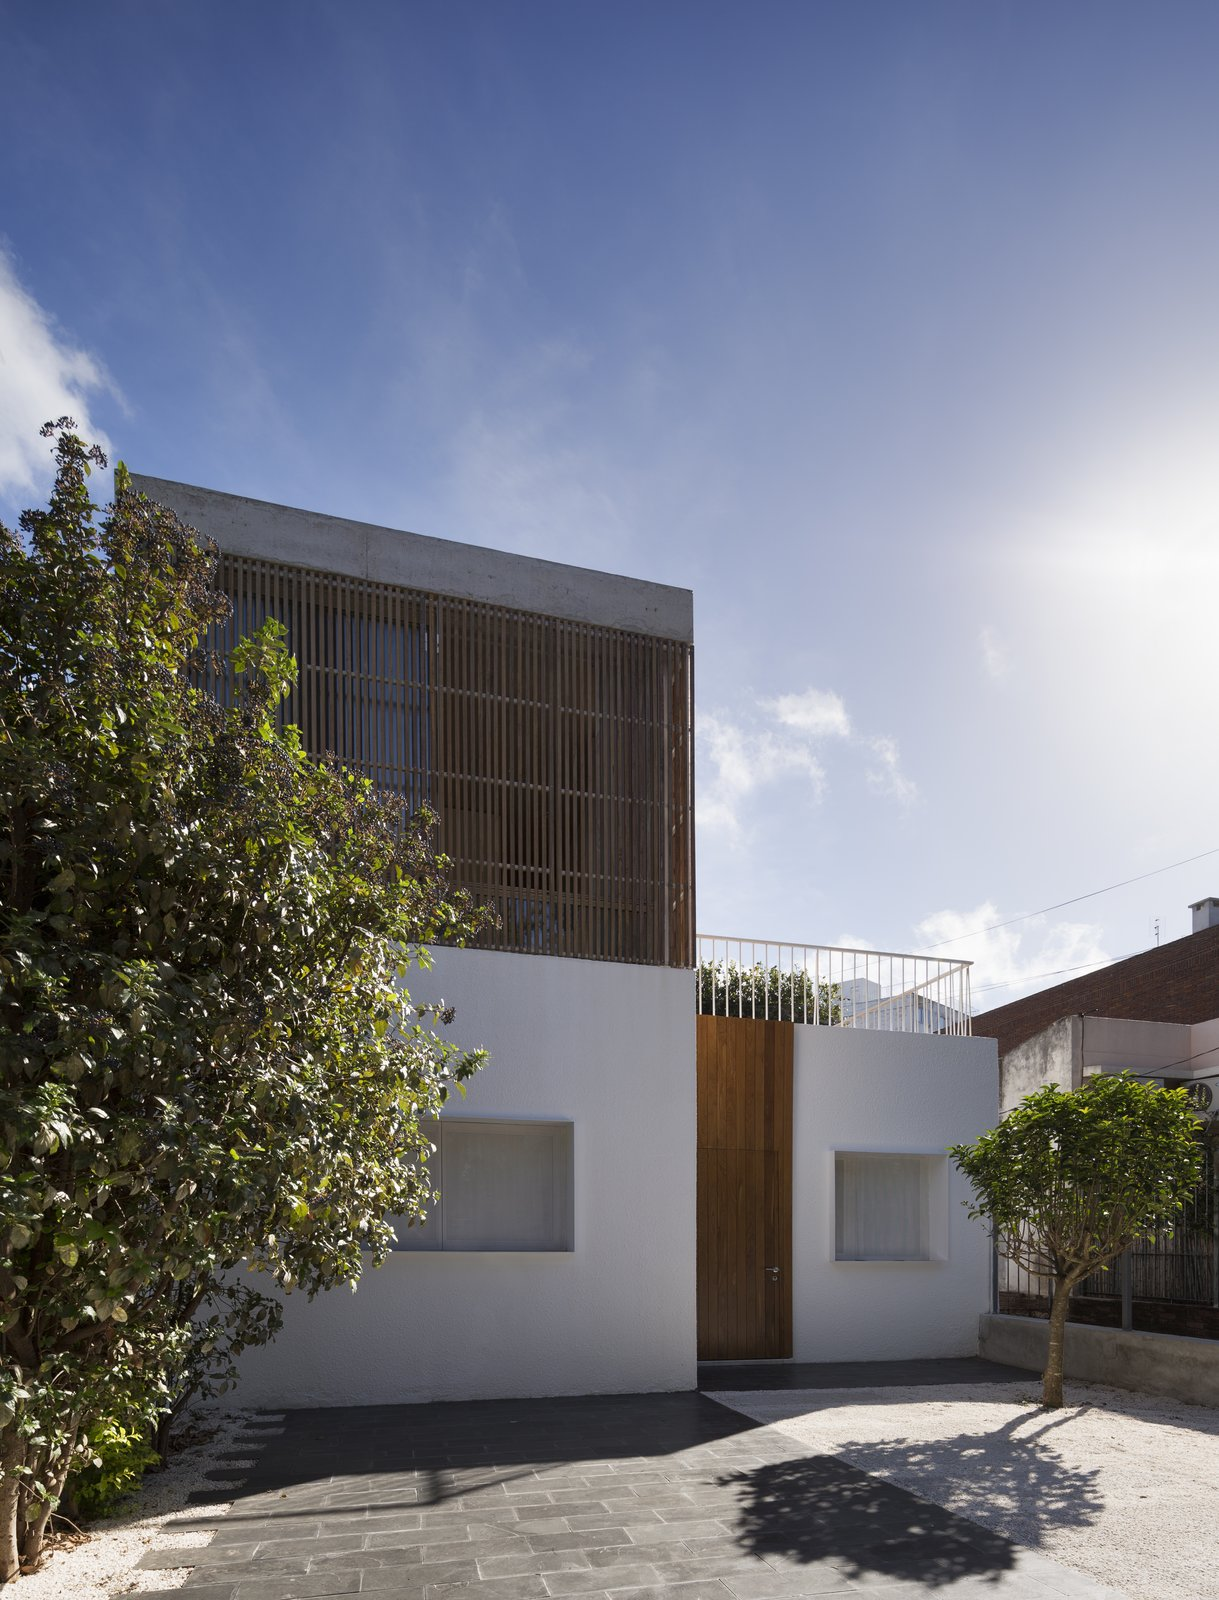 Facade Tagged: Outdoor, Front Yard, Trees, Walkways, Small Patio, Porch, Deck, Vegetables, Flowers, Gardens, Wood Patio, Porch, Deck, Concrete Patio, Porch, Deck, Wood Fences, Wall, and Tile Patio, Porch, Deck.  Casa Plaza by mass arquitectos